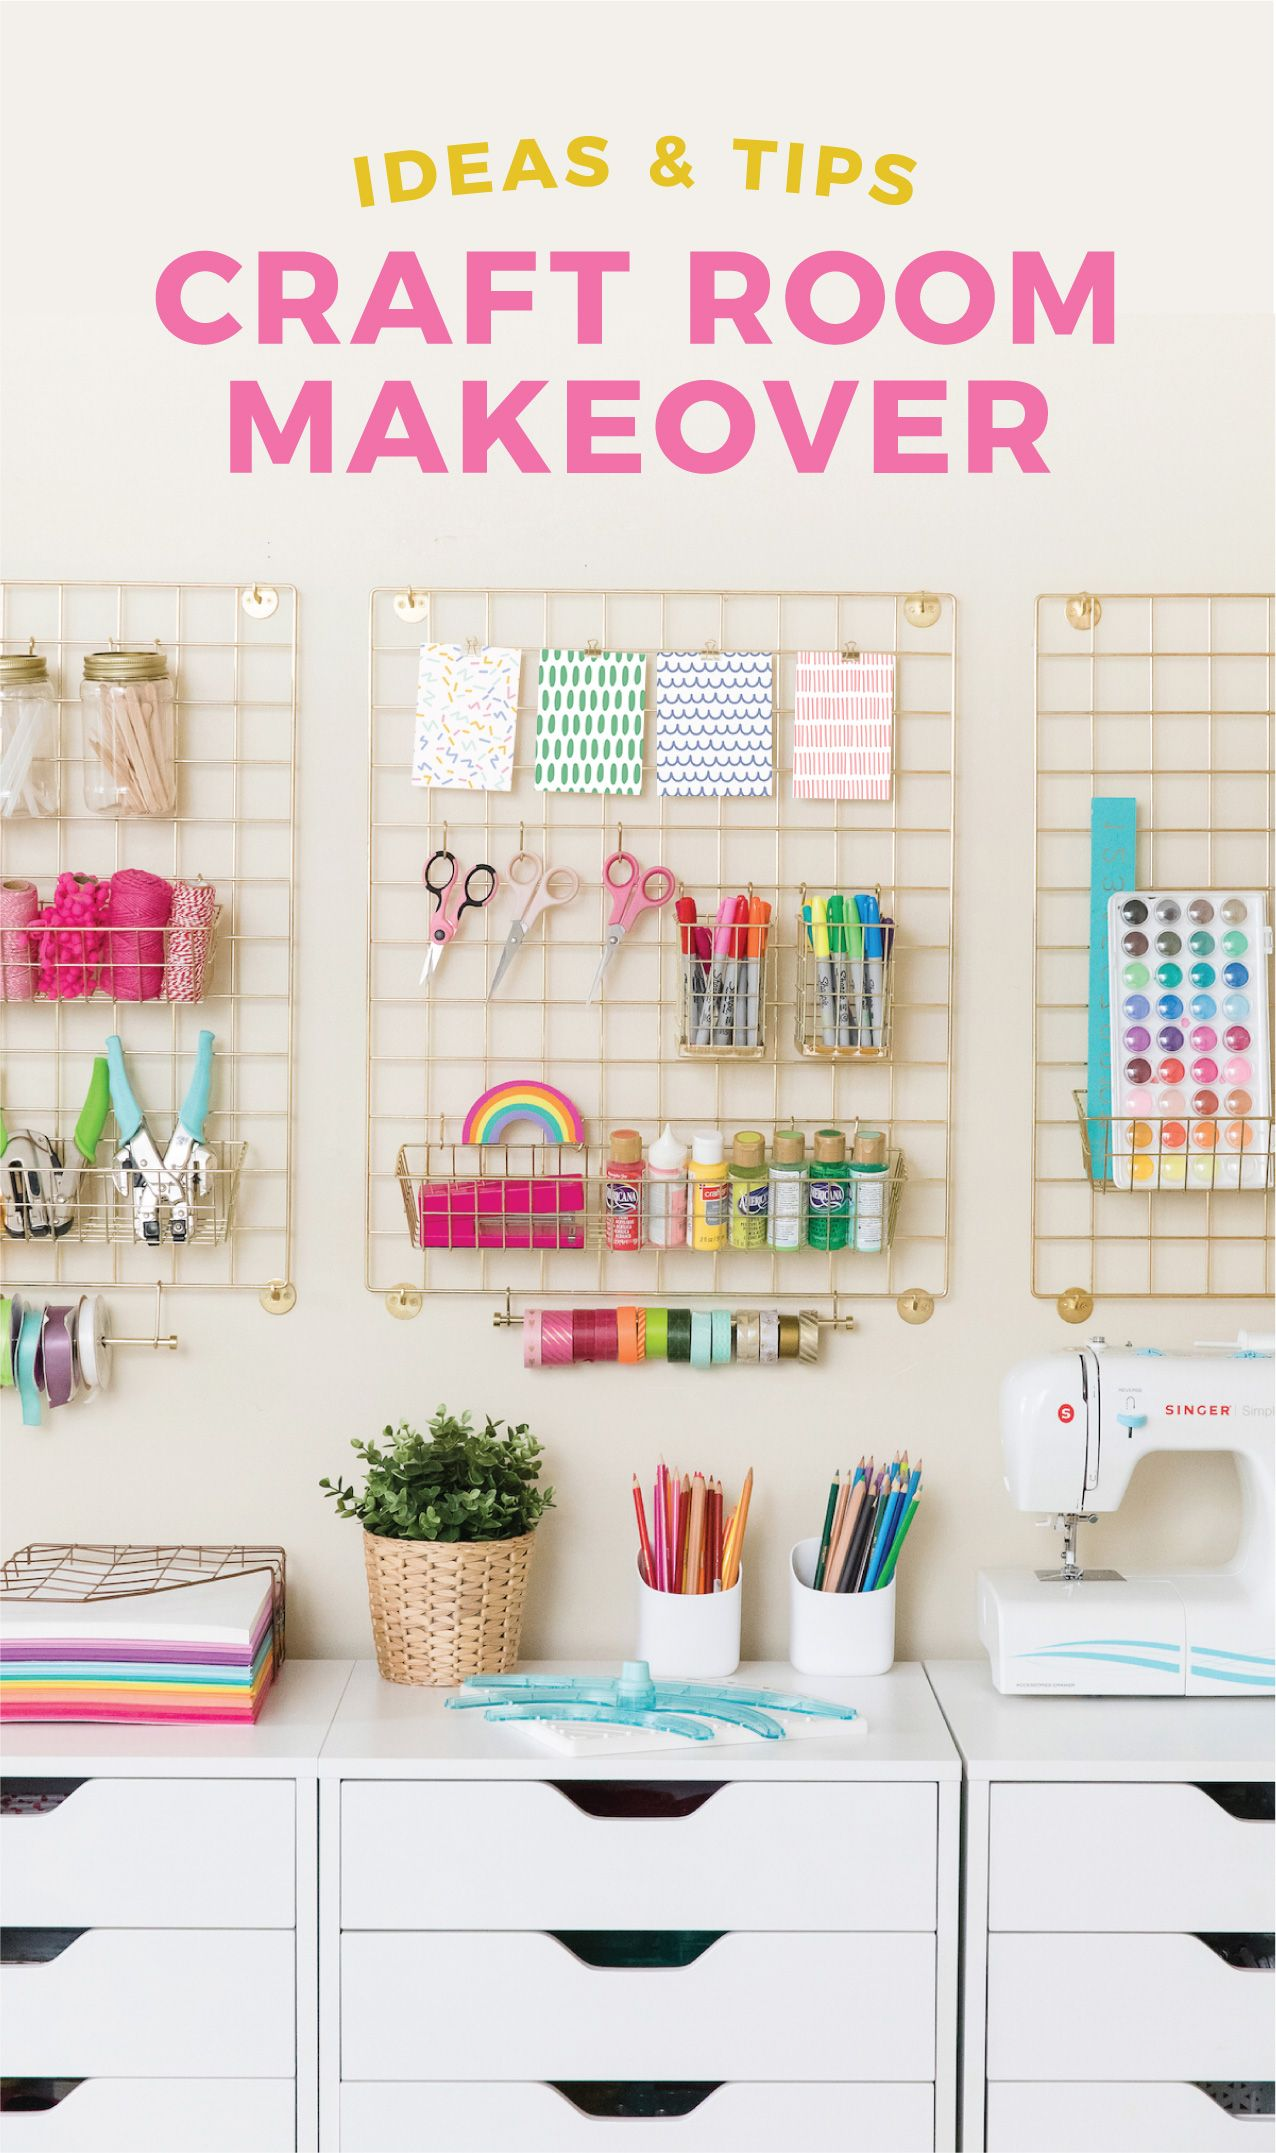 My new craft room reveal is here Going over craft room storage organization and decor ideas to help create an inspiring crafty space